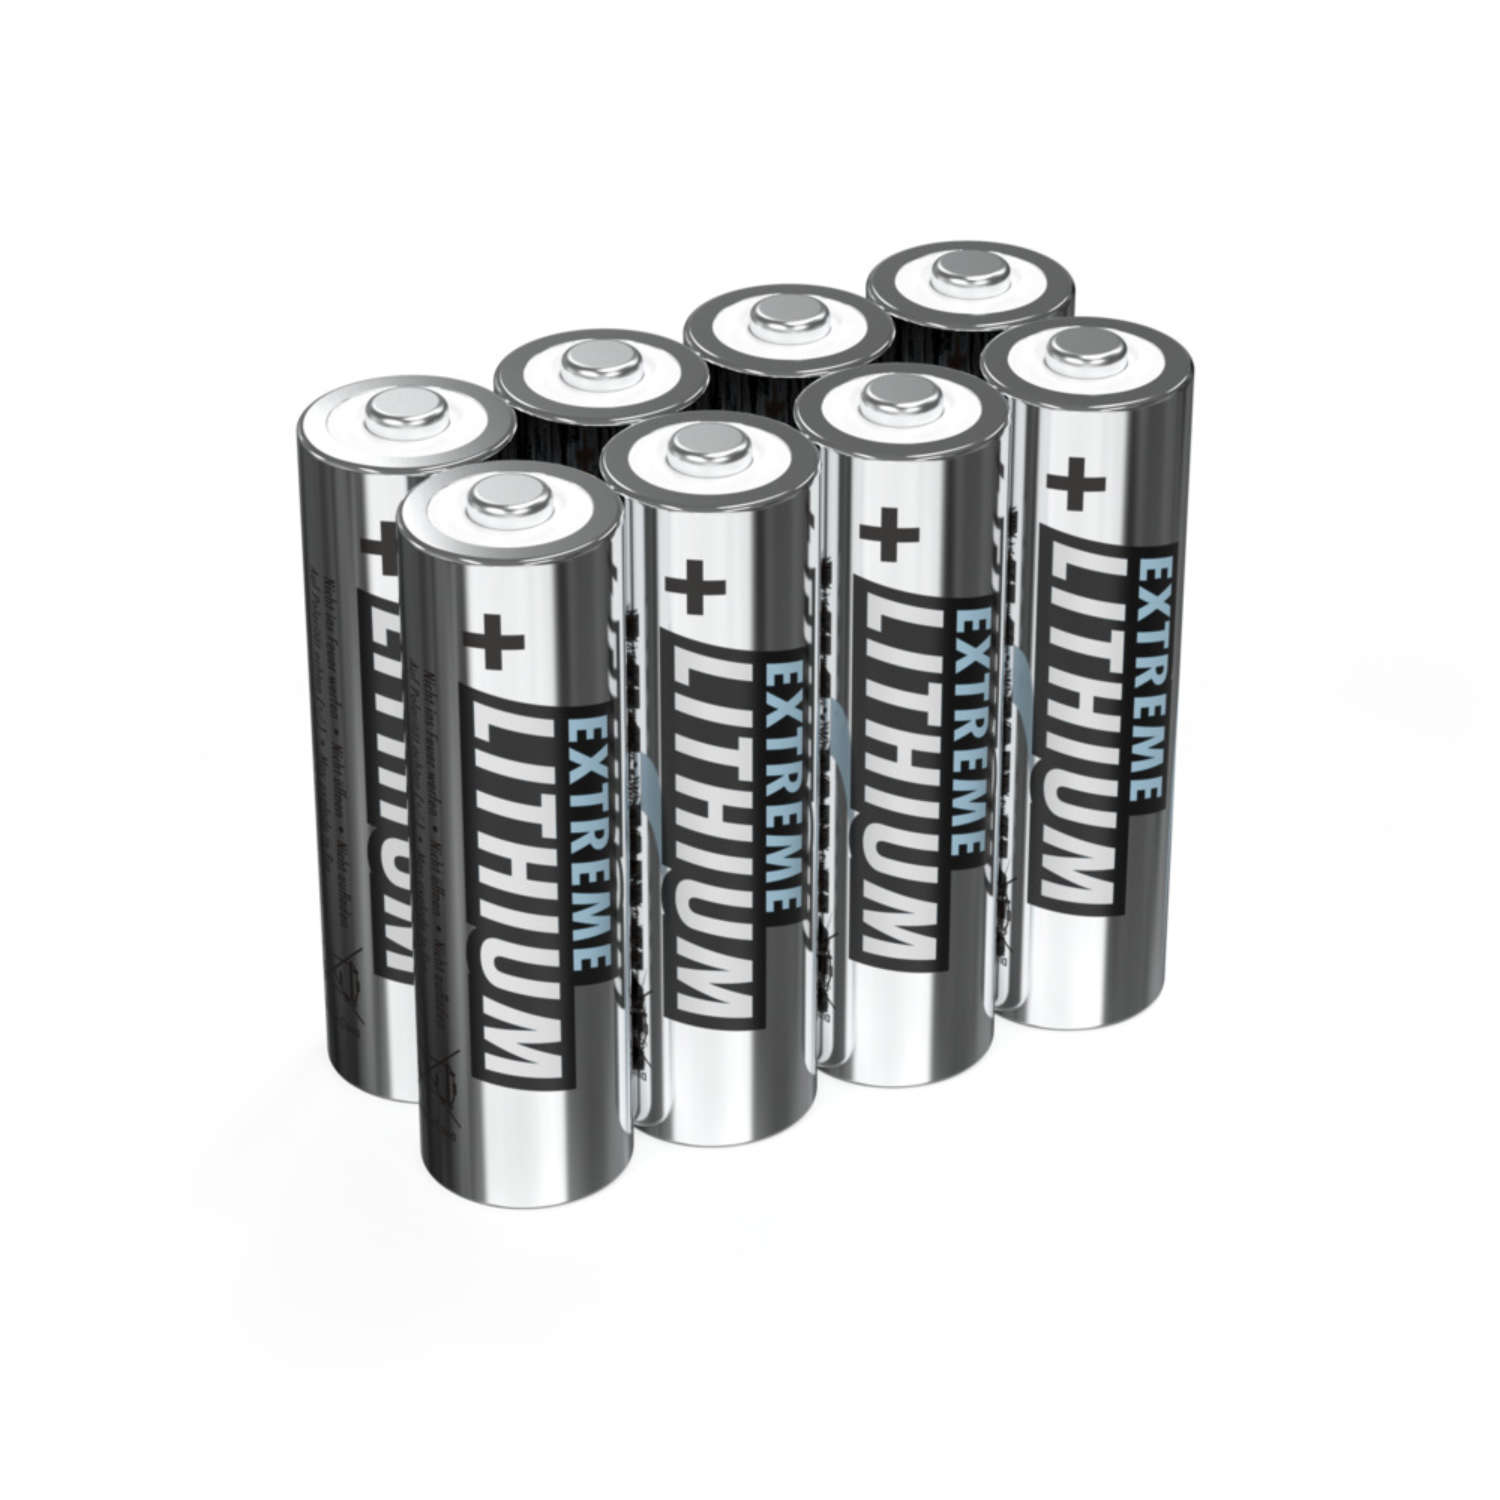 Lithium Battery AA / FR6 8 pcs. blister packaging